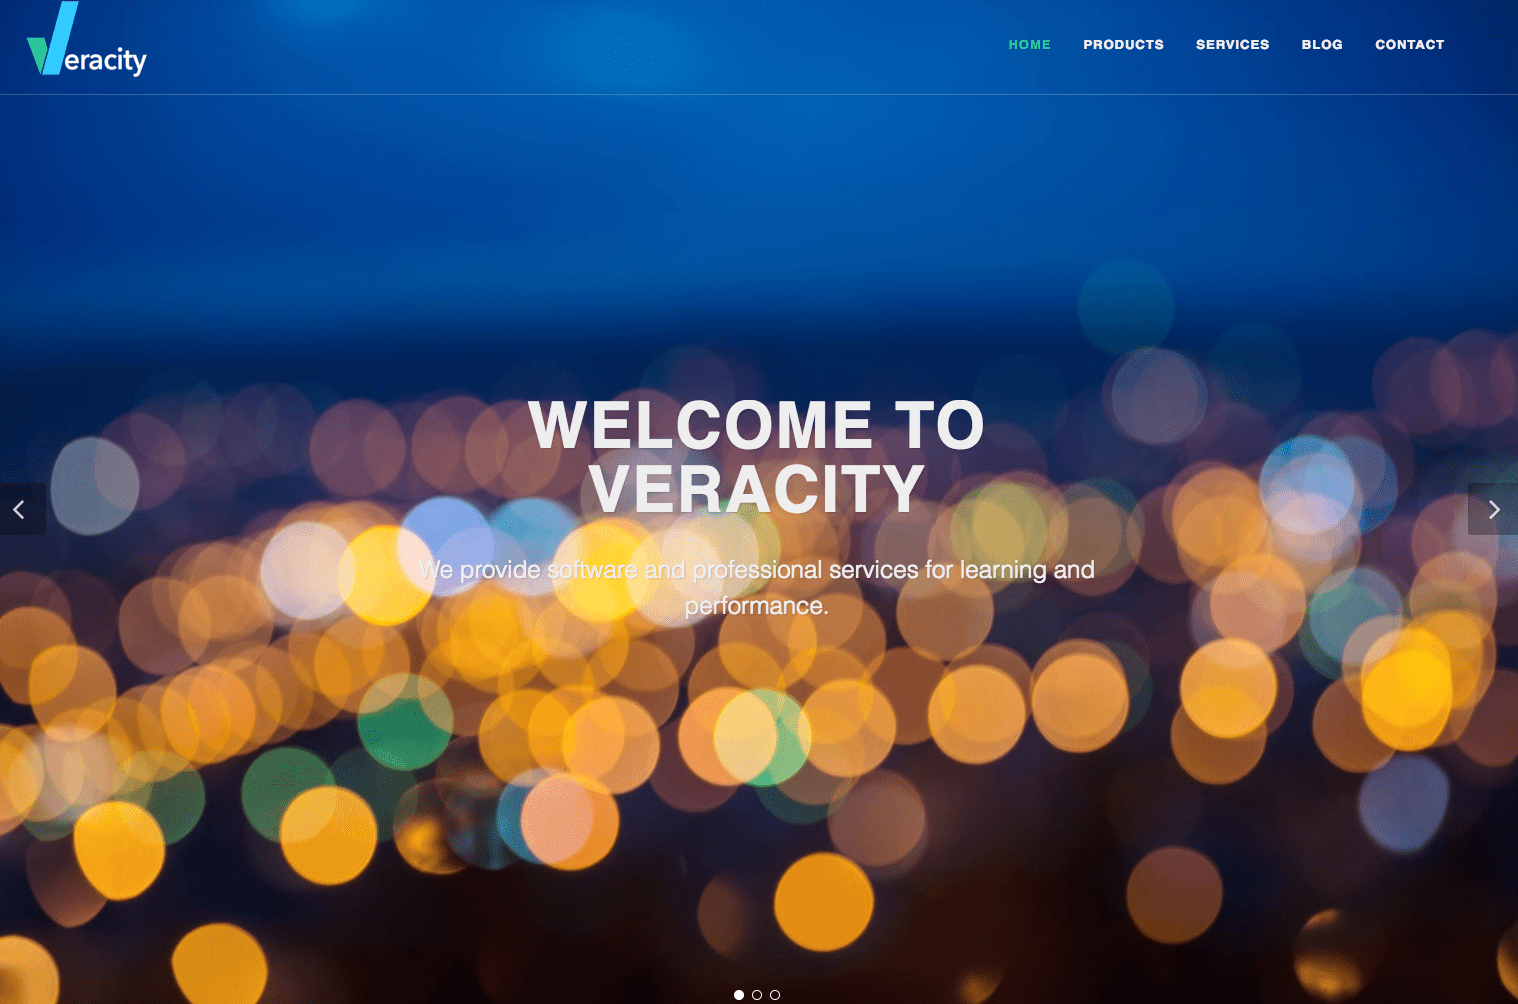 IT's Here! The New Veracity Website